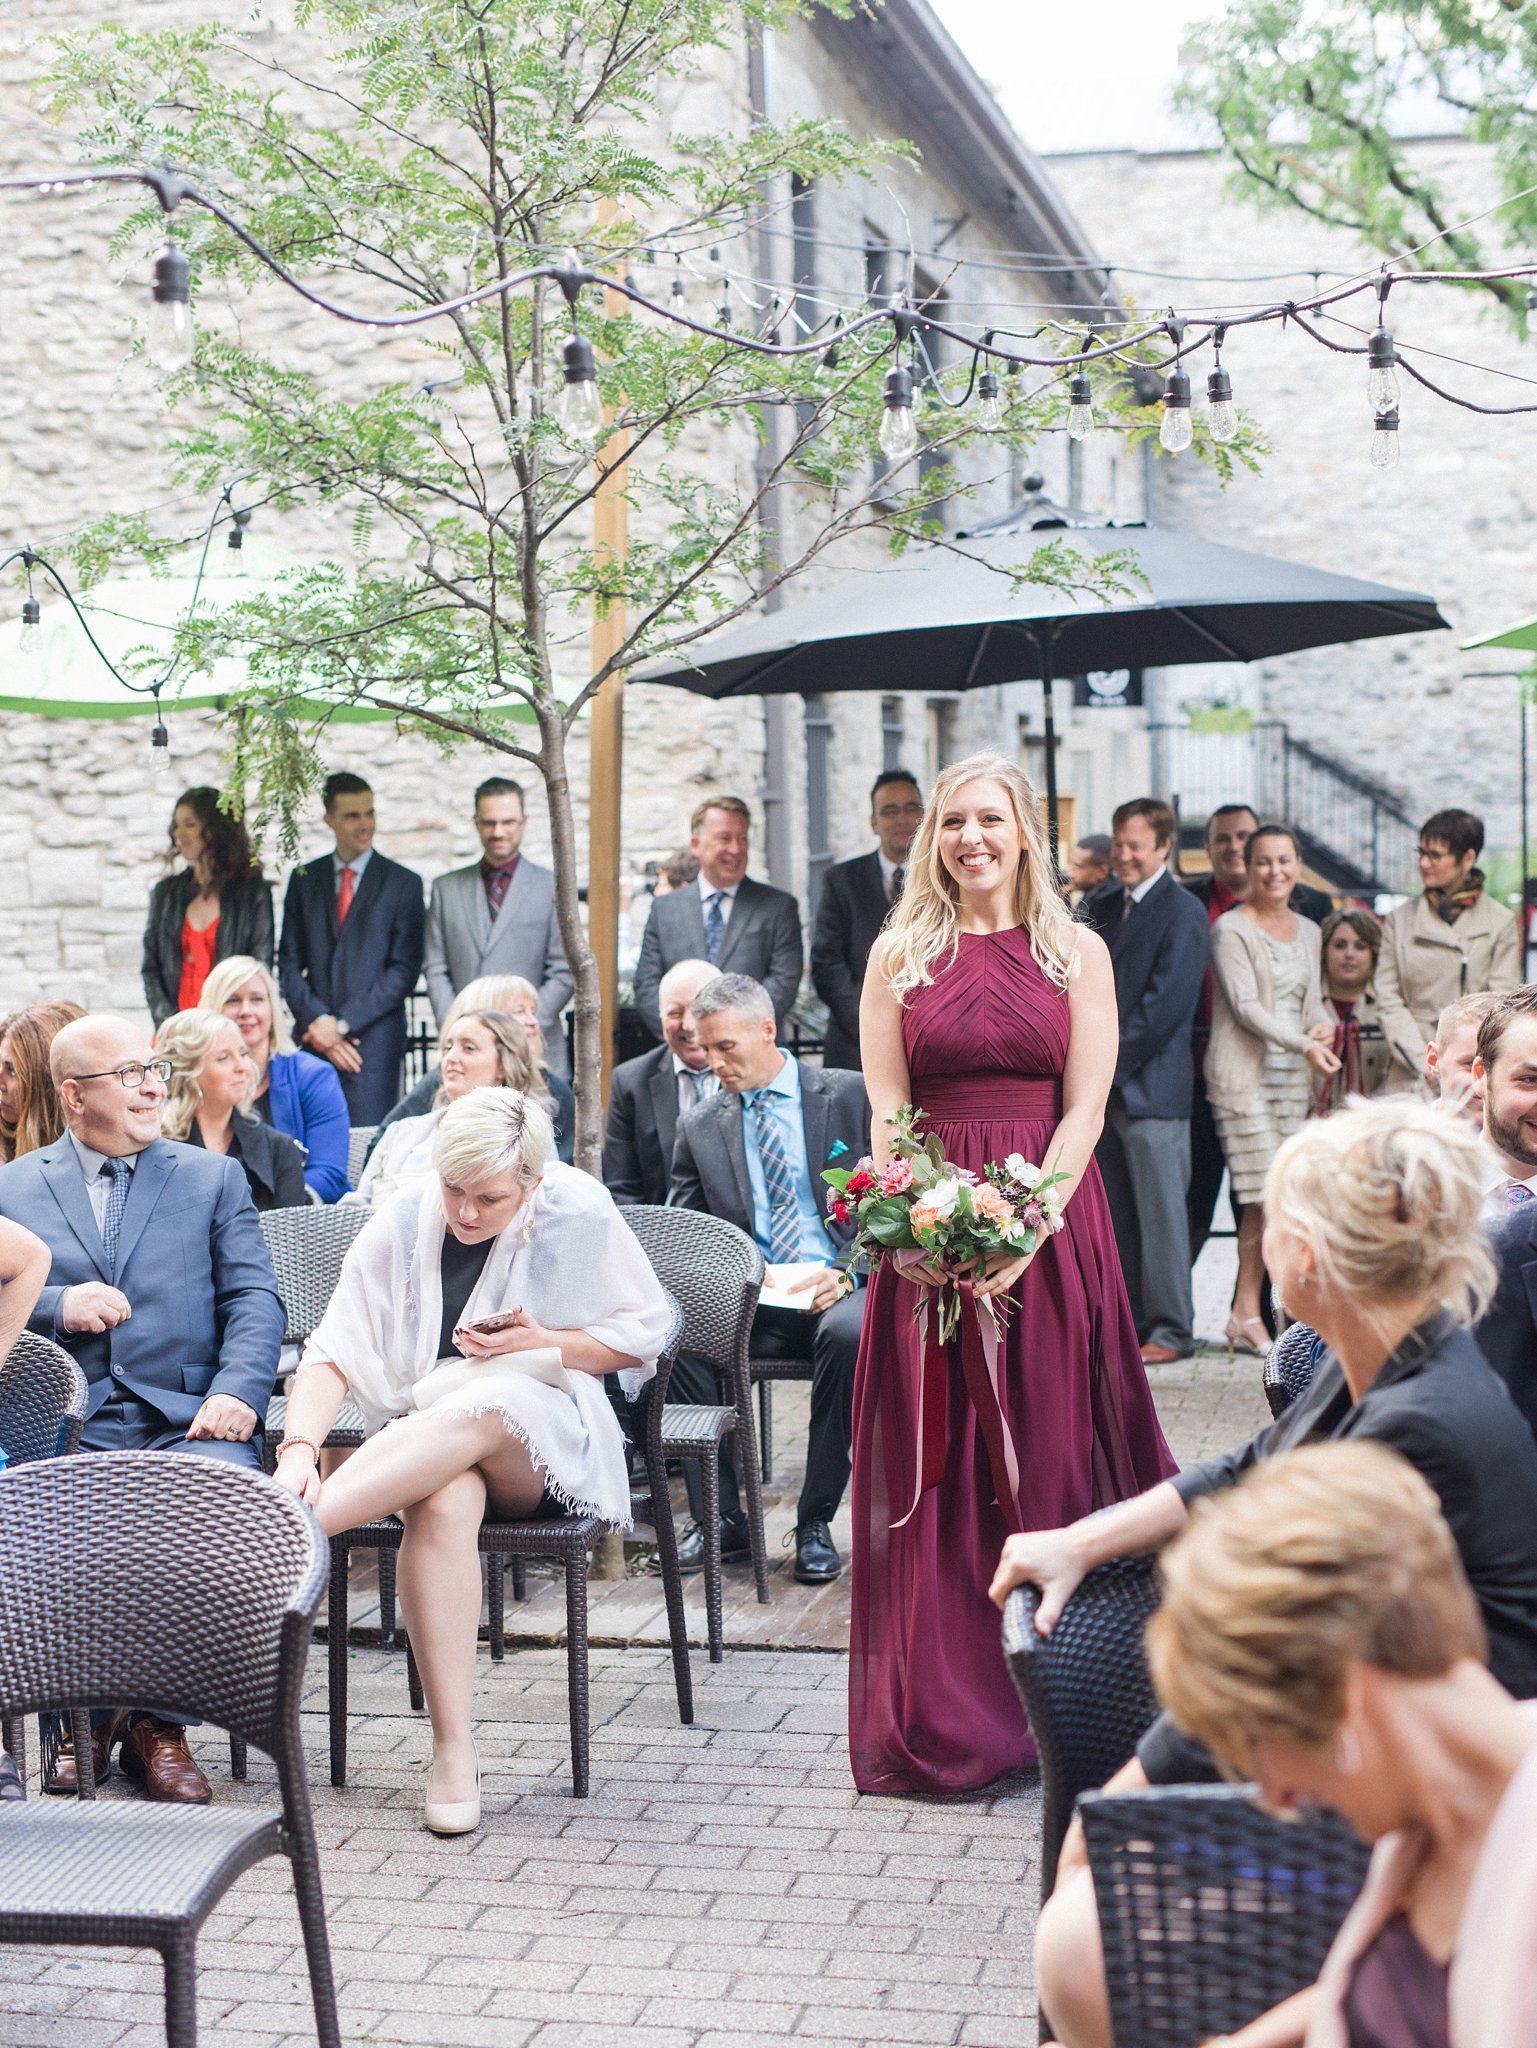 cranberry bridesmaid walking down aisle Ottawa restaurant wedding at Sidedoor Restaurant